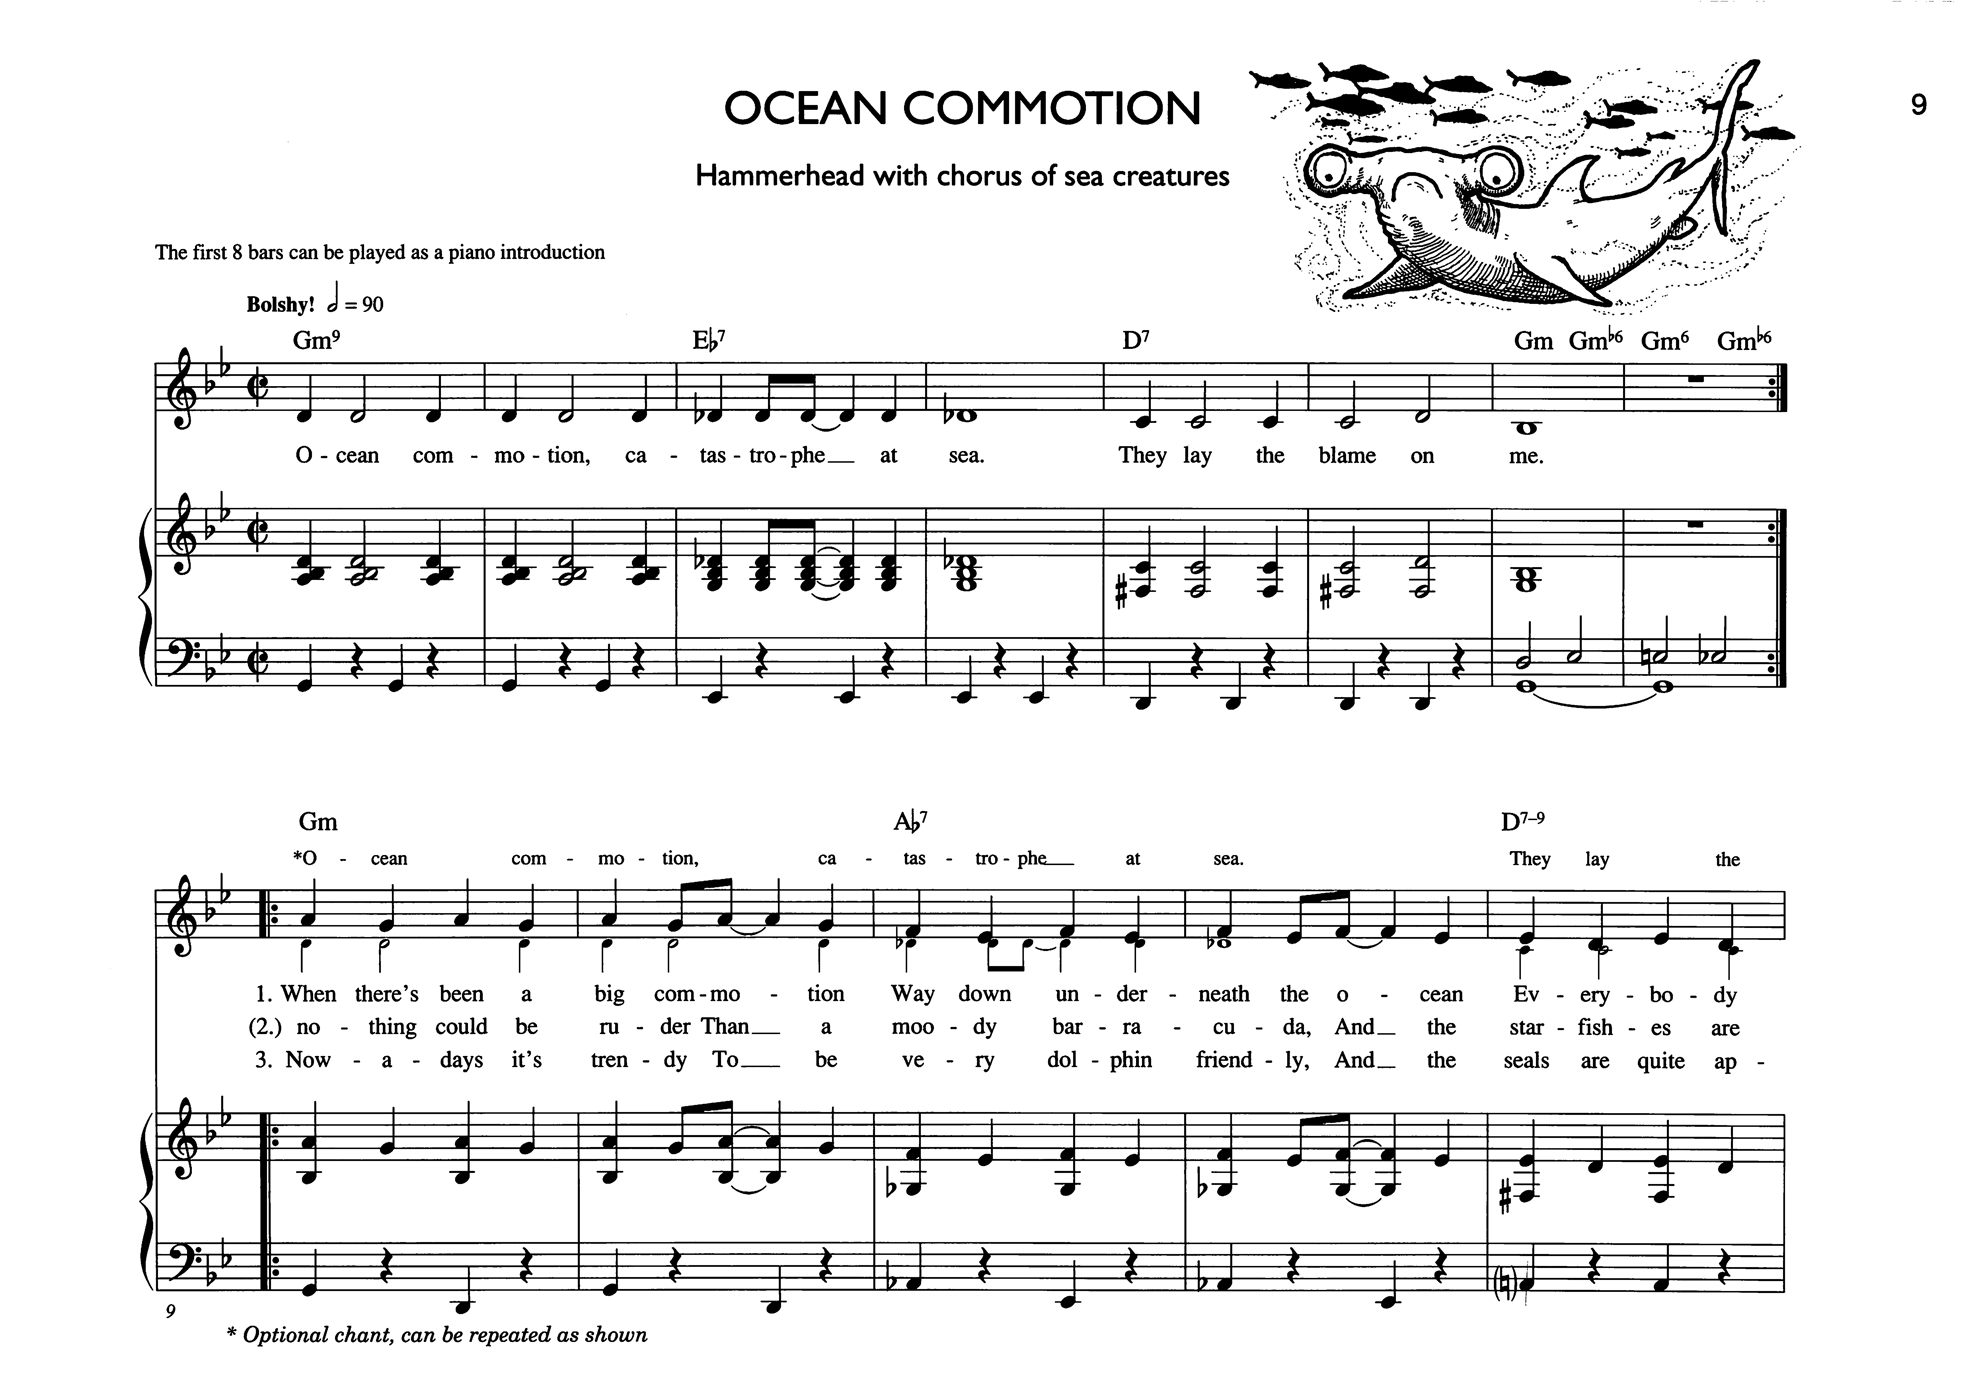 Ocean Commotion_Score_Sample